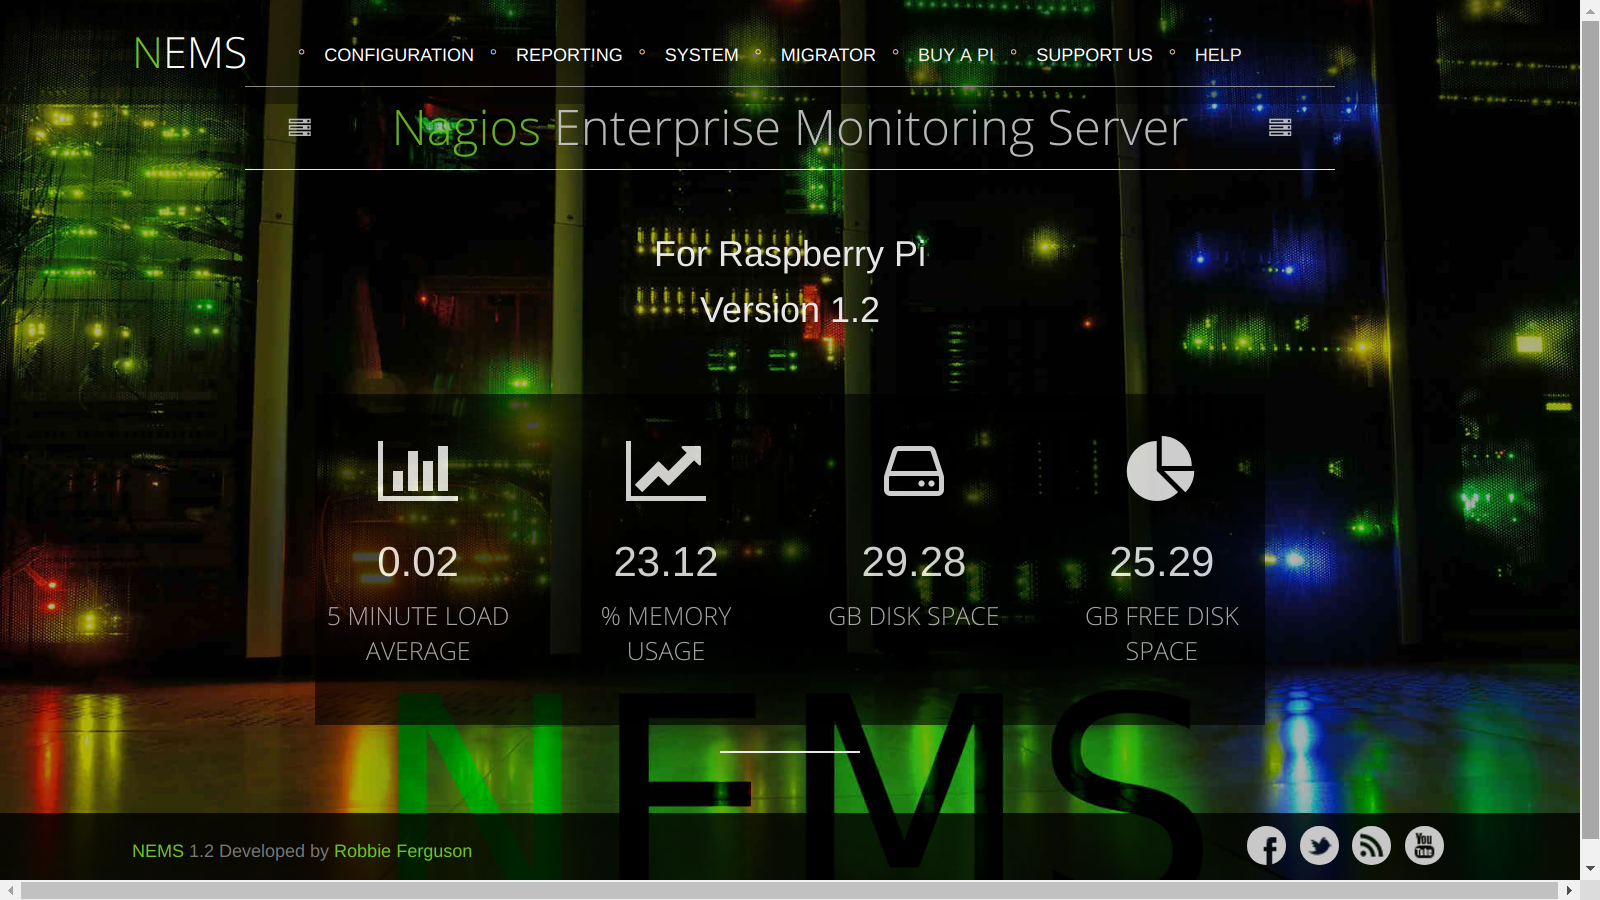 NEMS Linux – Nagios Enterprise Monitoring Server for Raspberry Pi 3